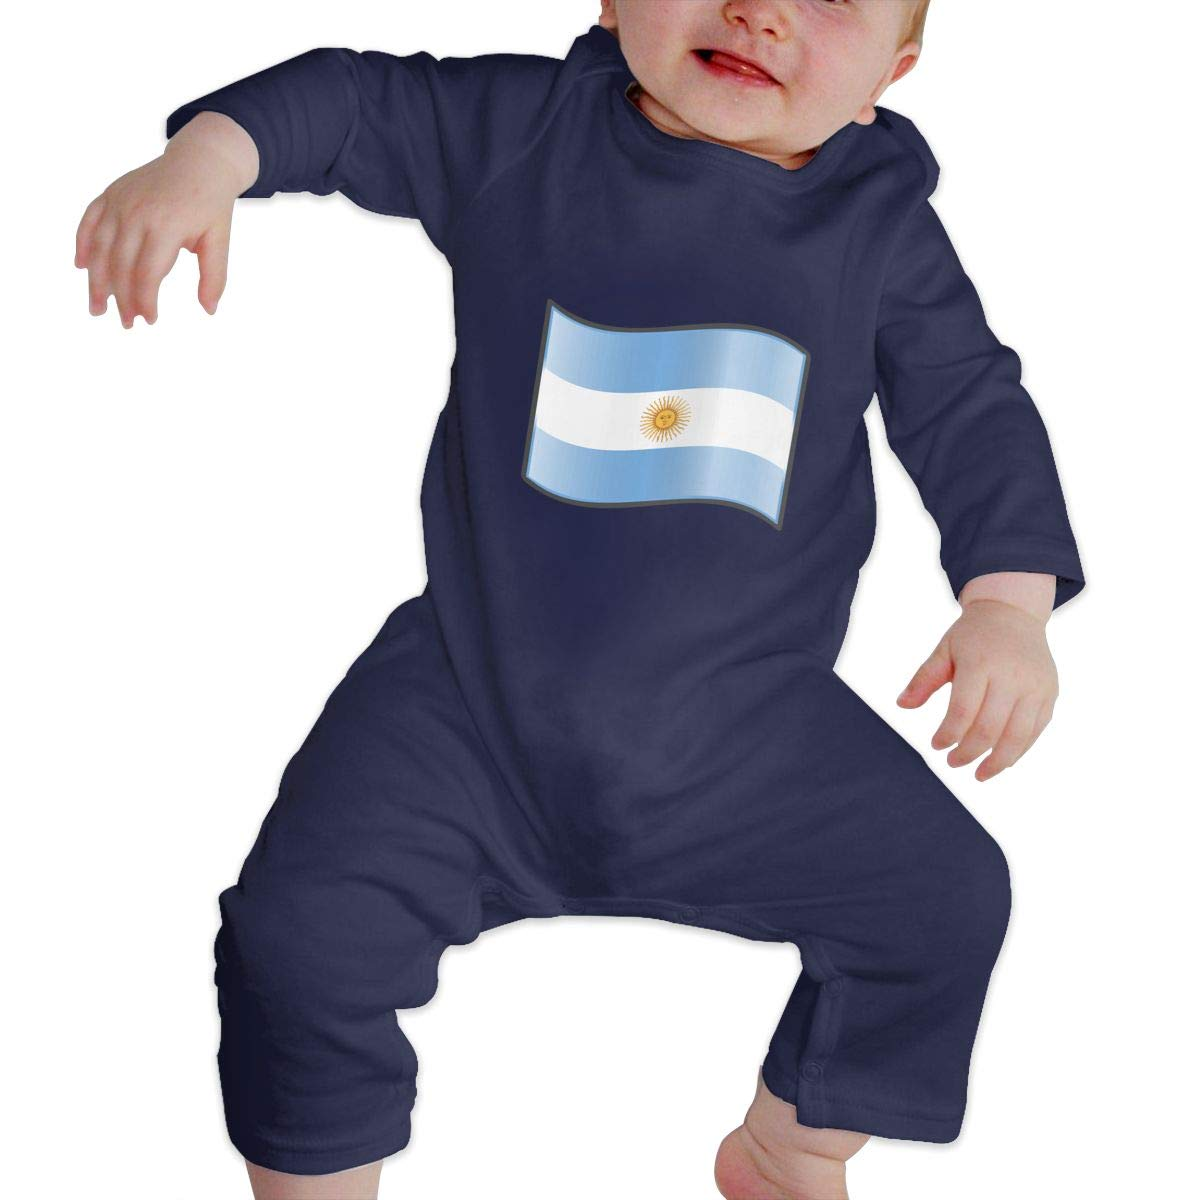 Suit 6-24 Months Q64 Newborn Round Collar Argentina Flag Long Sleeve Playsuit 100/% Cotton